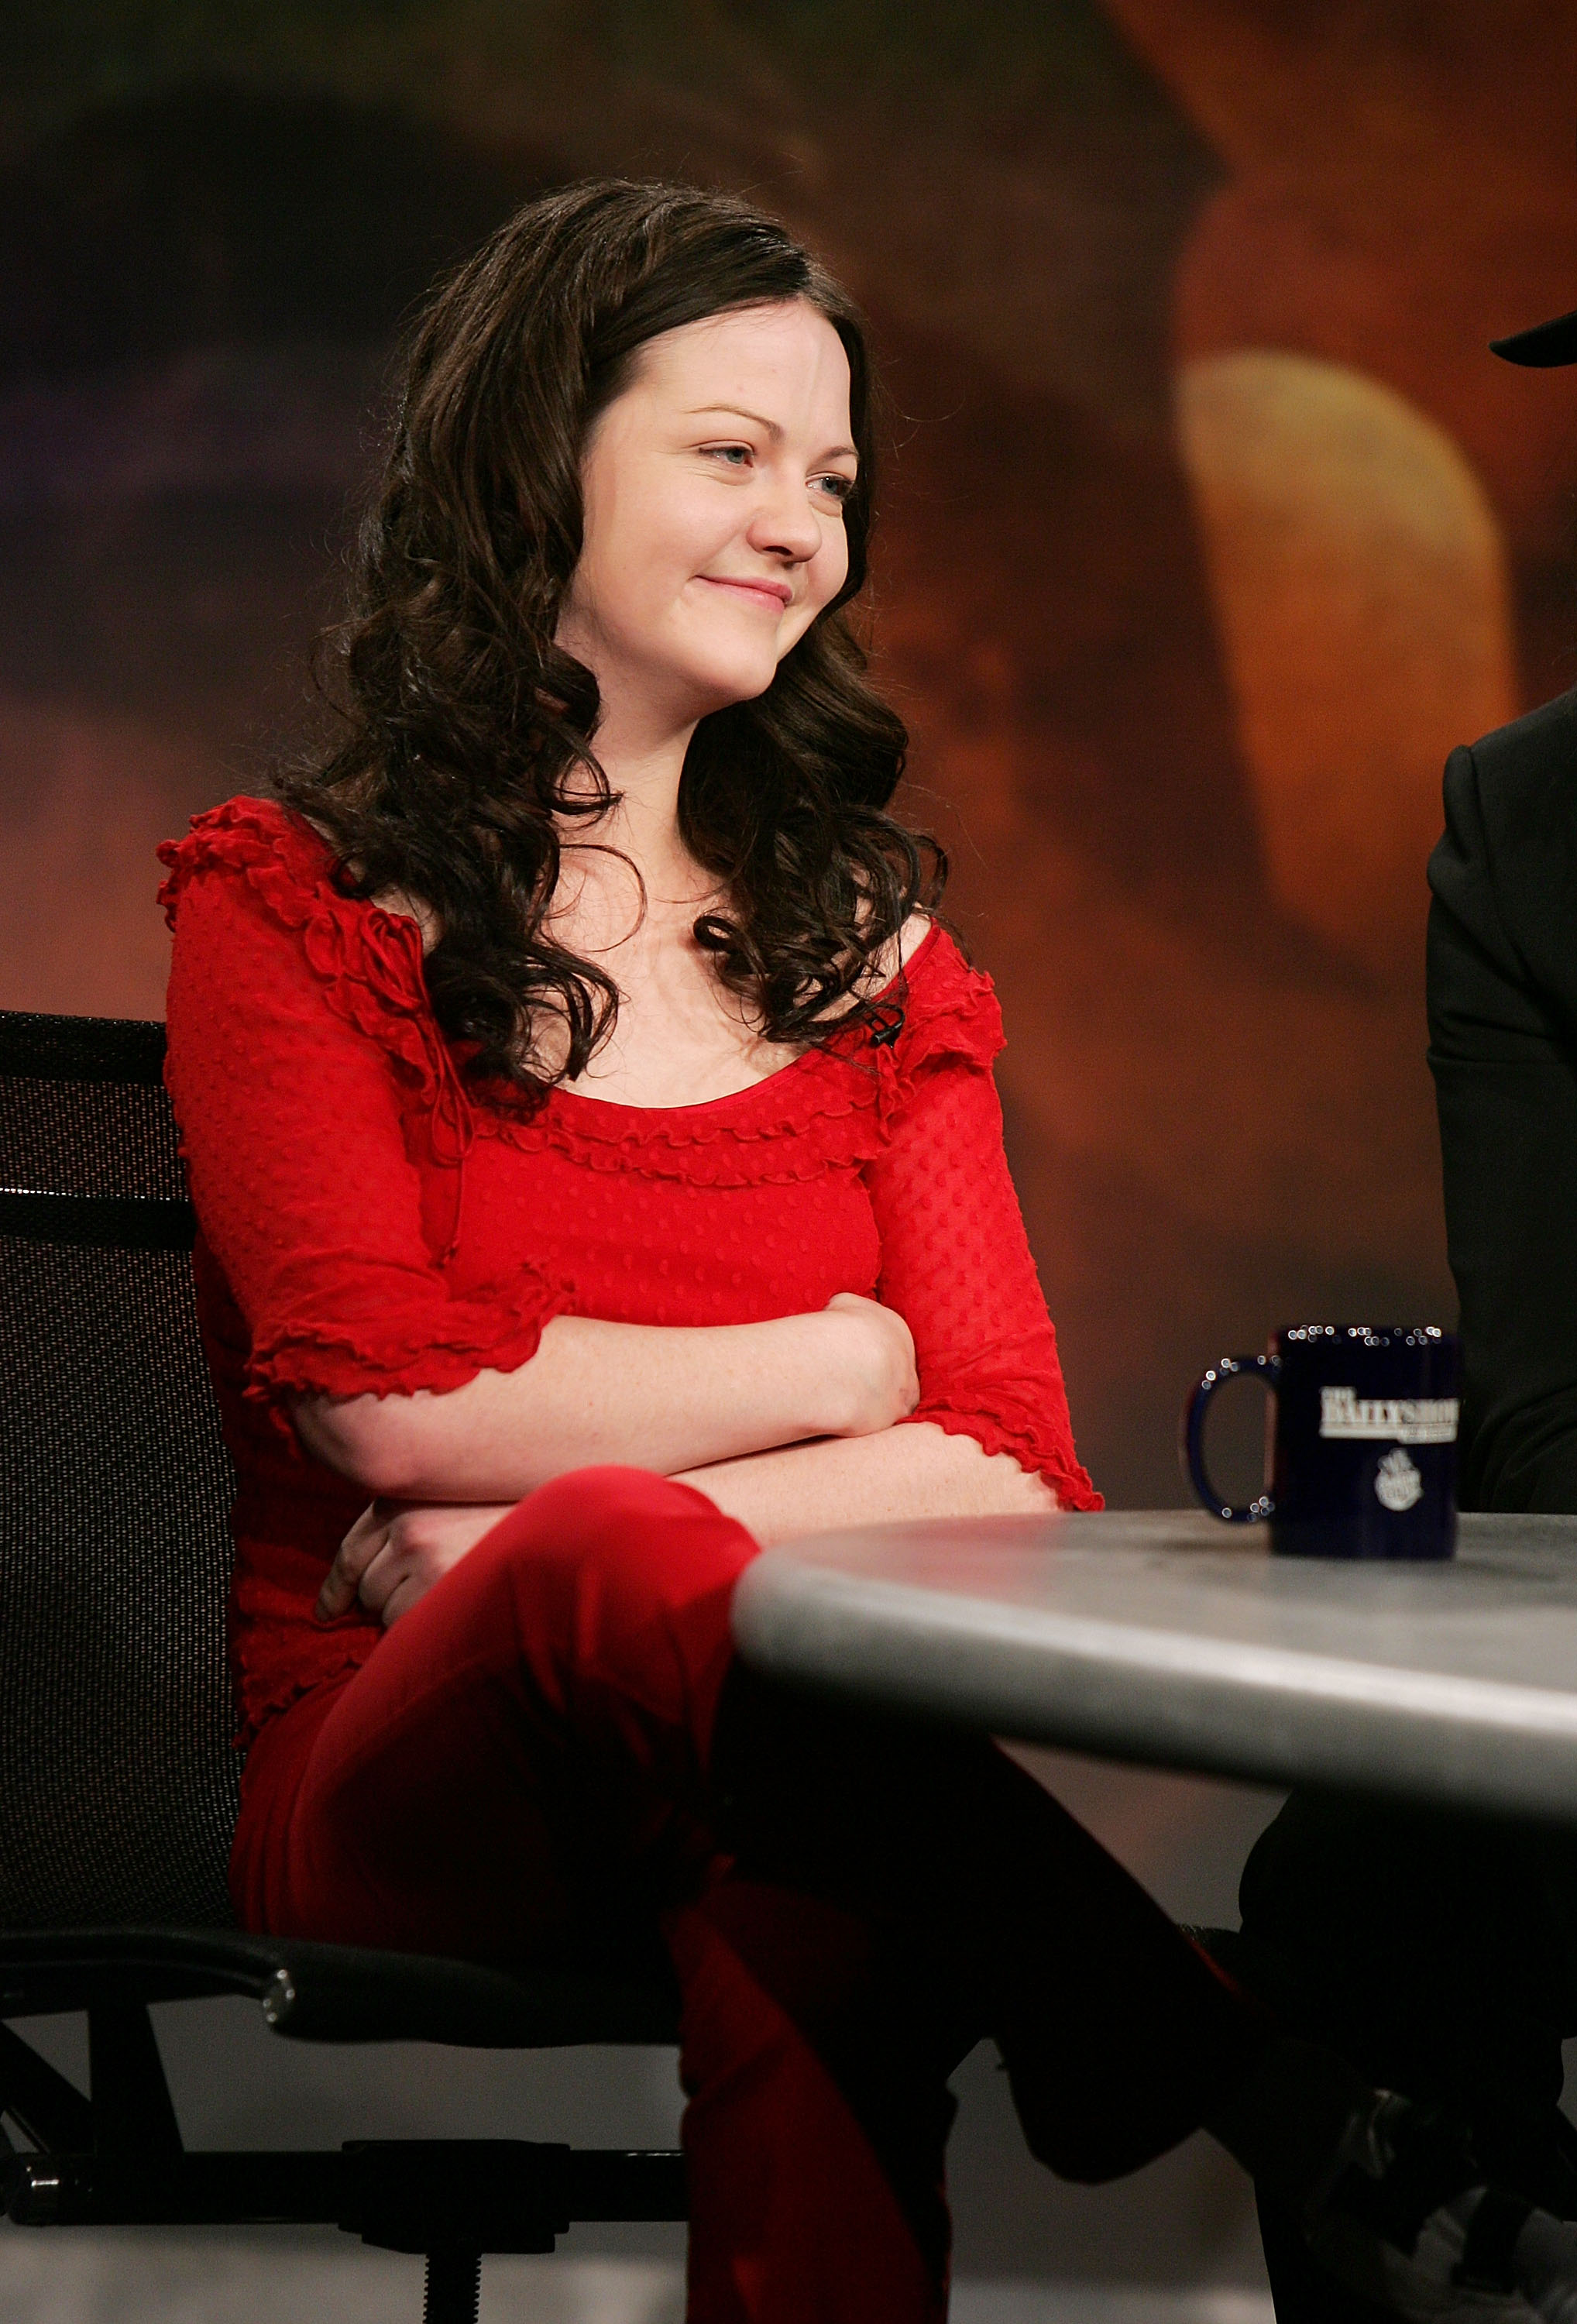 White Stripes Drummer Meg White To Wed This Year | Access ...